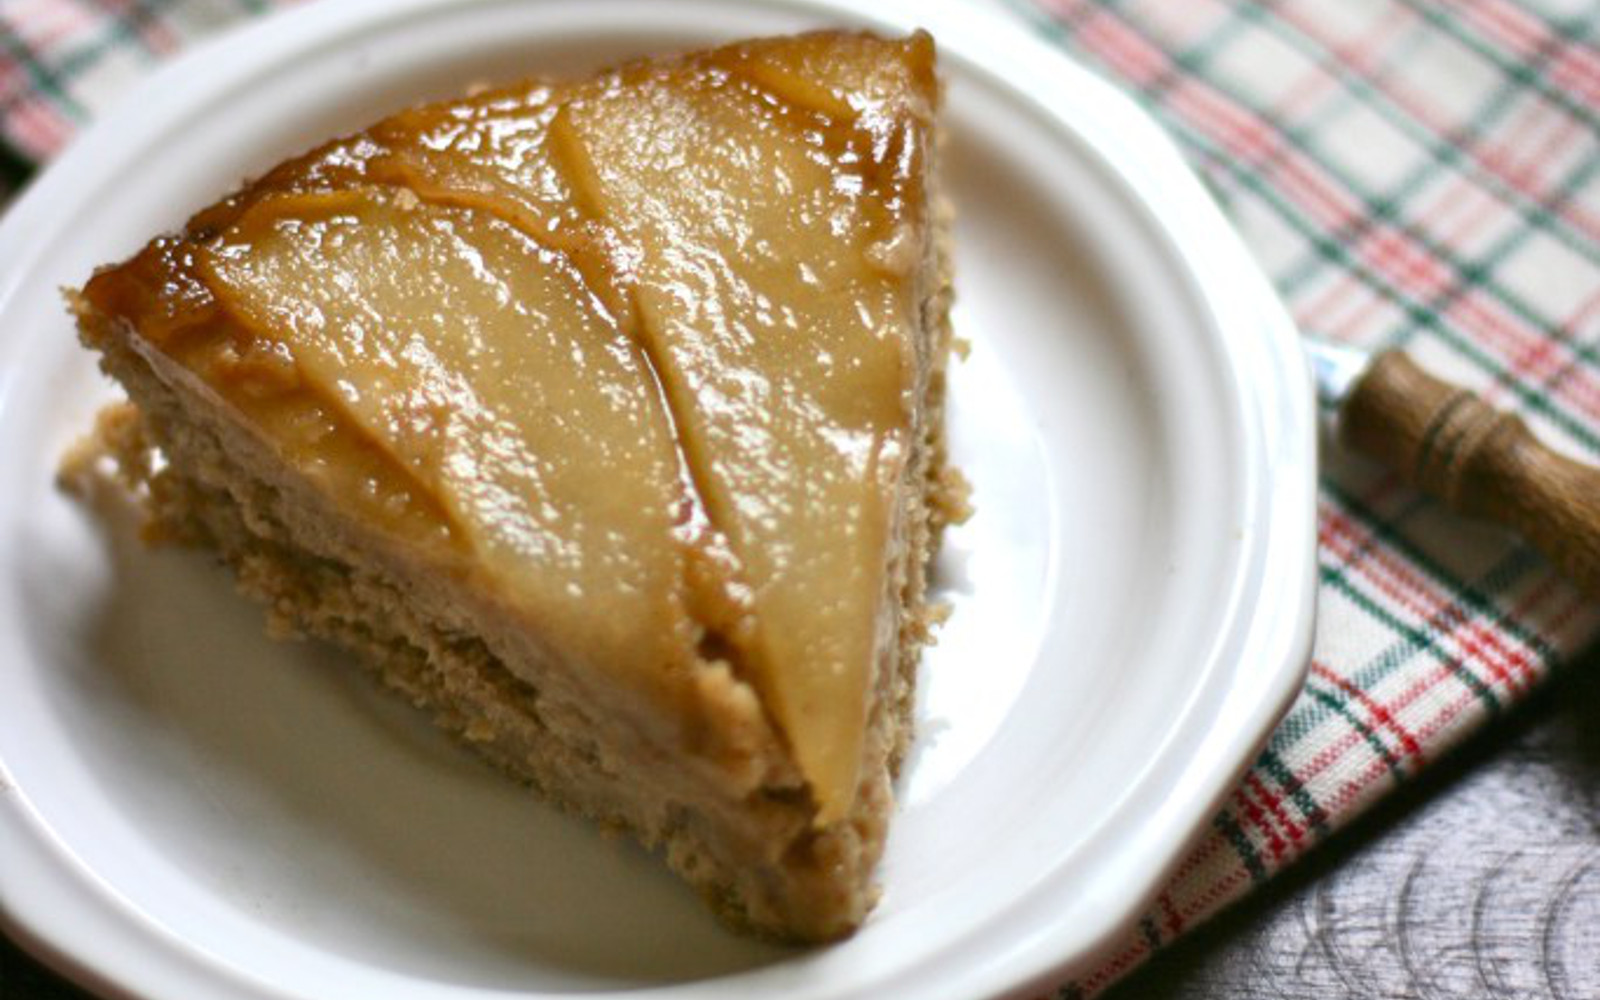 Ginger-Spiced Pear Upside Down Cake